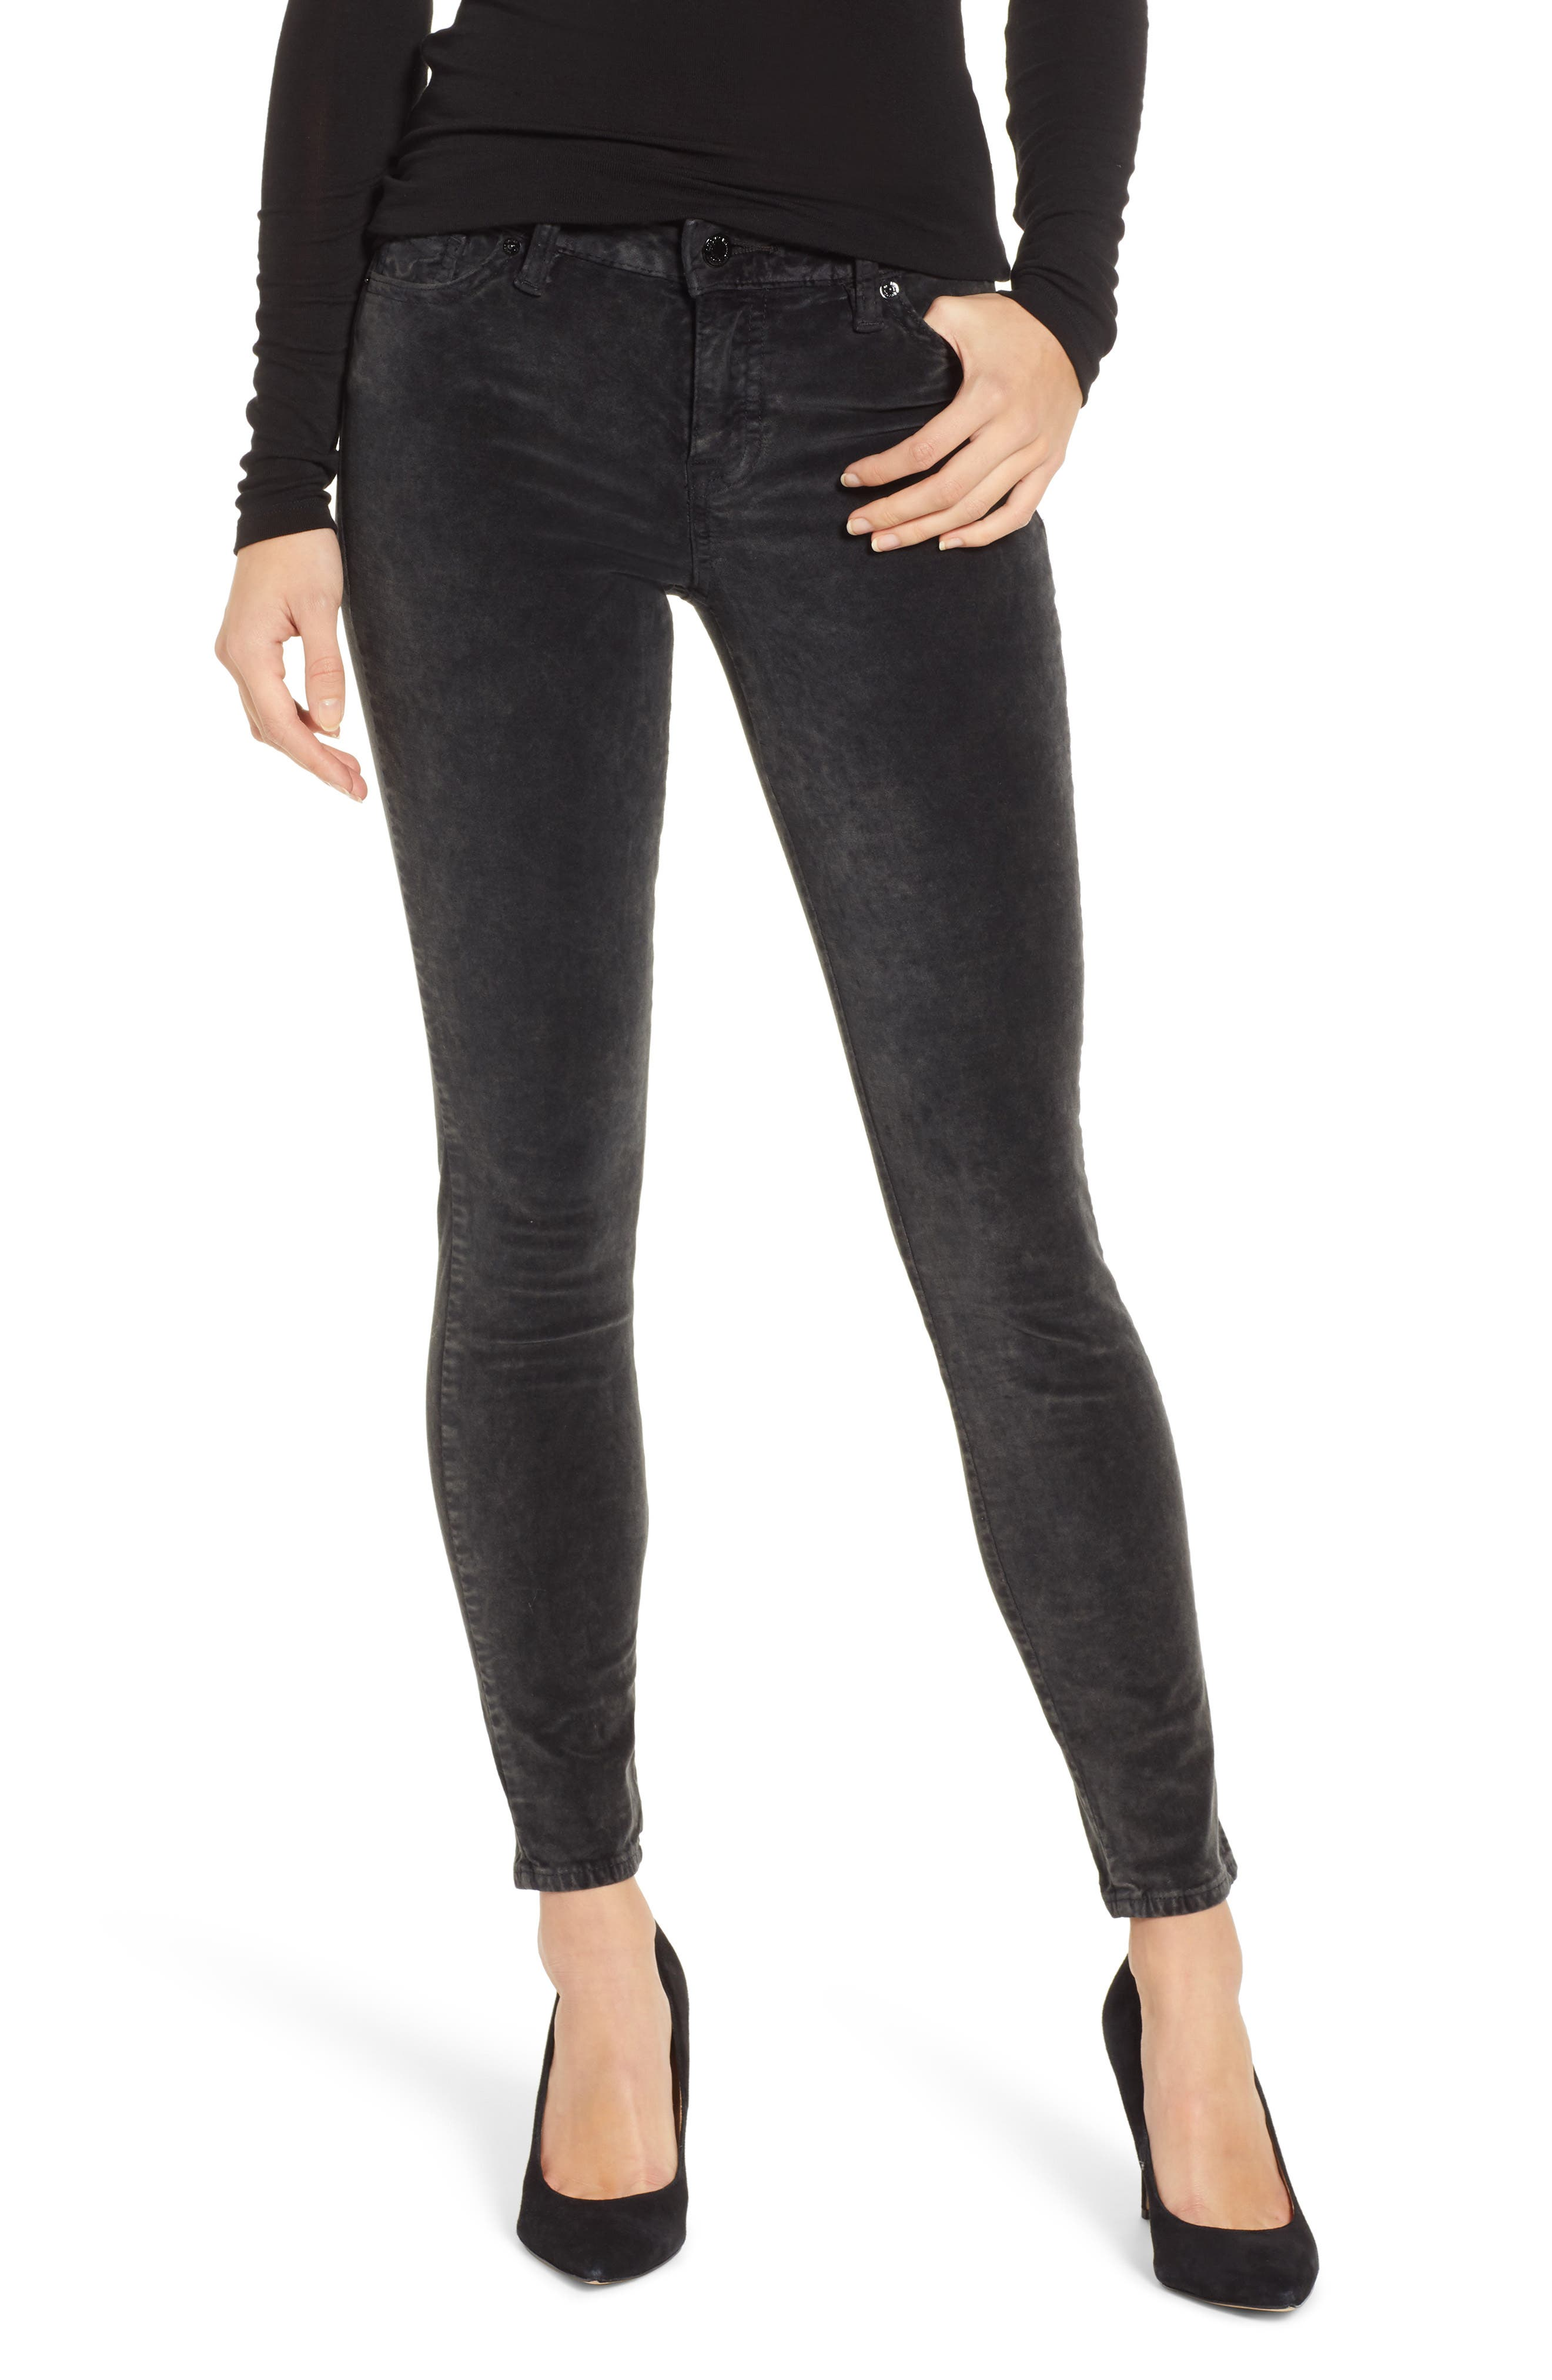 61739b80342ab Jeans Lucky Clothing for Women | Nordstrom